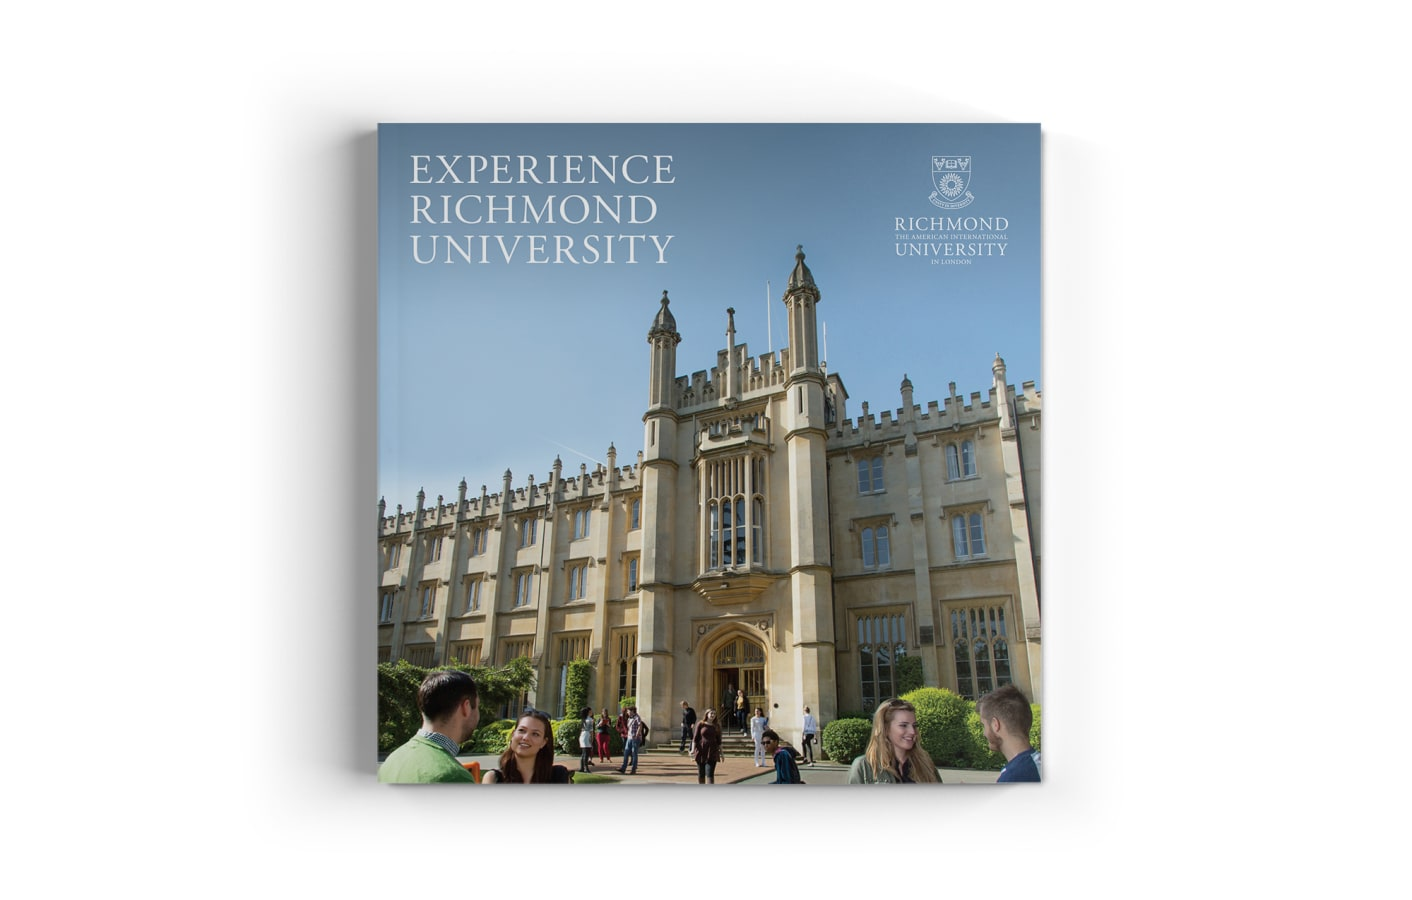 Richmond university prospectus cover on a white background